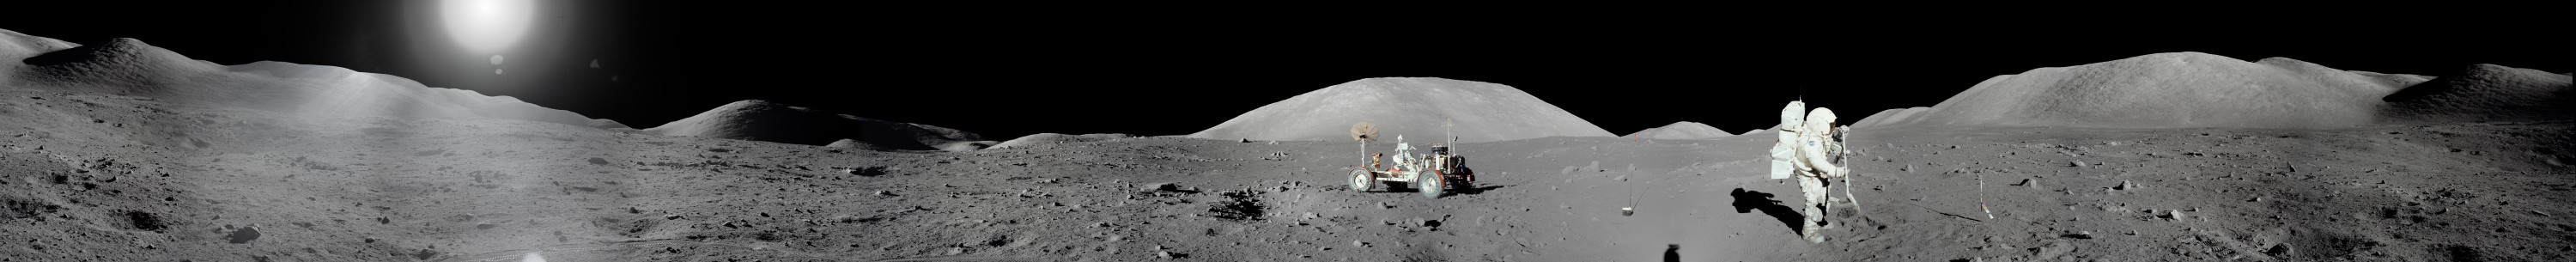 Panorama of the Taurus-Littrow valley created from photographs by Apollo 17 astronaut Eugene Cernan. Fellow astronaut Harrison Schmitt is shown using a rake to collect samples.